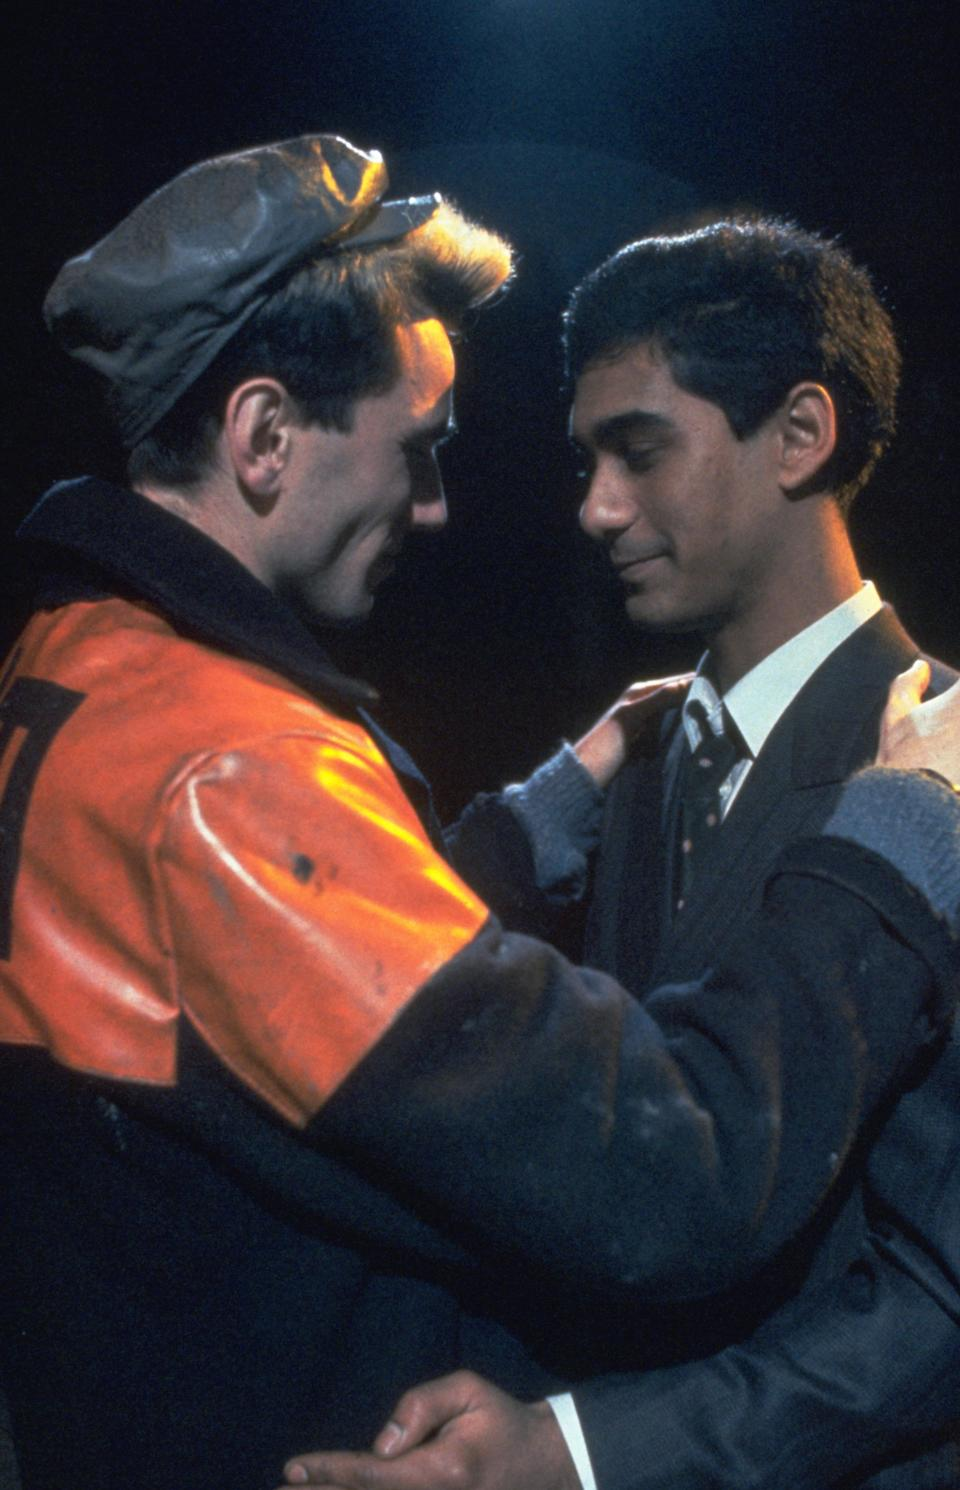 <strong><em><h3>My Beautiful Laundrette </h3></em></strong><h3>(1985)<br></h3><br>In a rough neighborhood of London, Omar Ali (Gordon Warnecke) inherits a laundromat from his uncle. Then, Omar is beat up by a gang of racist kids — the leader of whom is, surprisingly, Omar's ex-lover, Johnny (Daniel Day-Lewis). Despite Johnny's connection to the group, he and Omar rekindle their relationship. This acclaimed, heartening movie about love against the odds features what may be the best ear lick of all time.